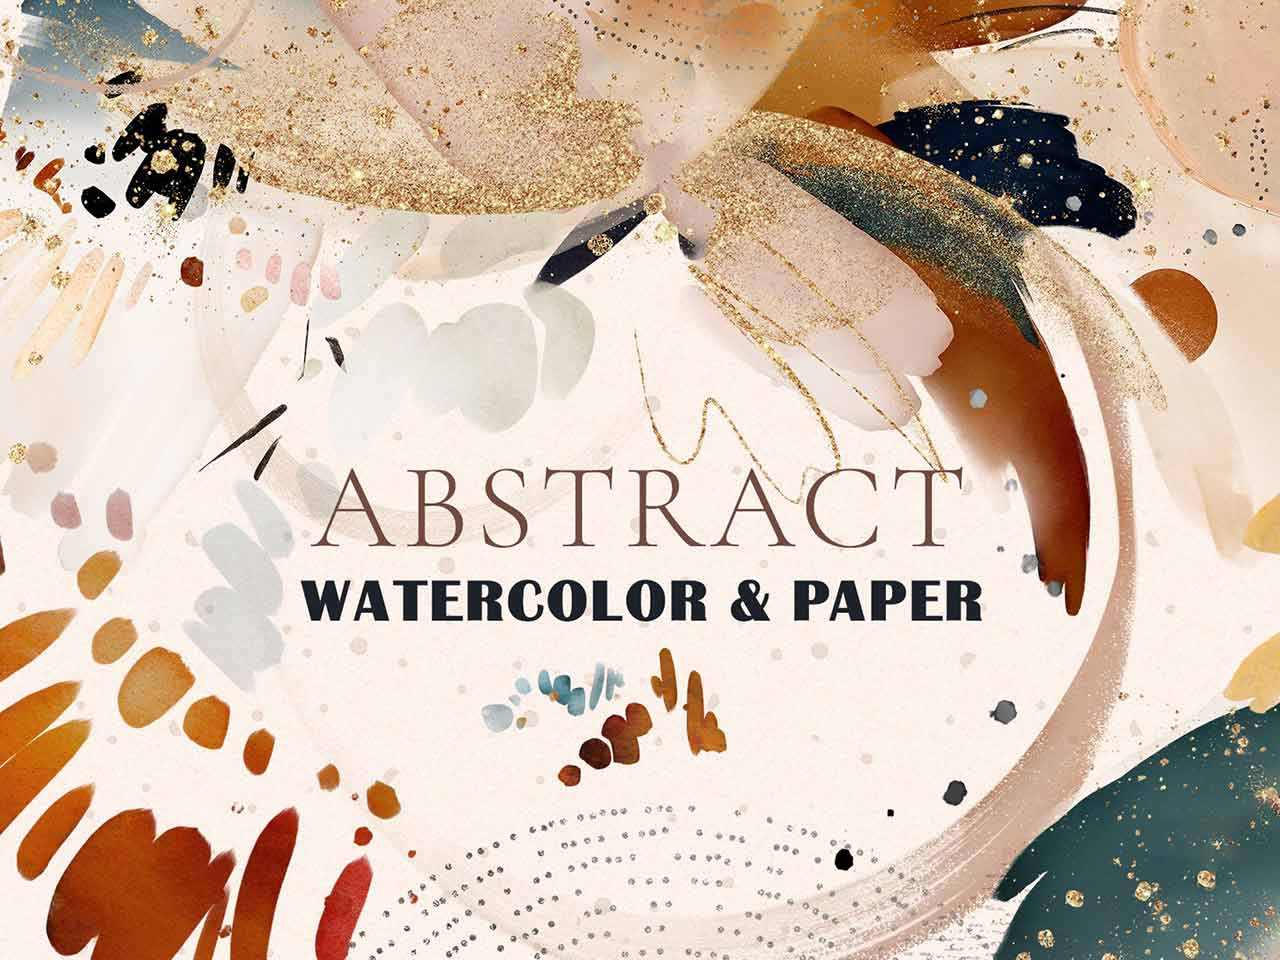 Abstract Watercolor & Paper Textures